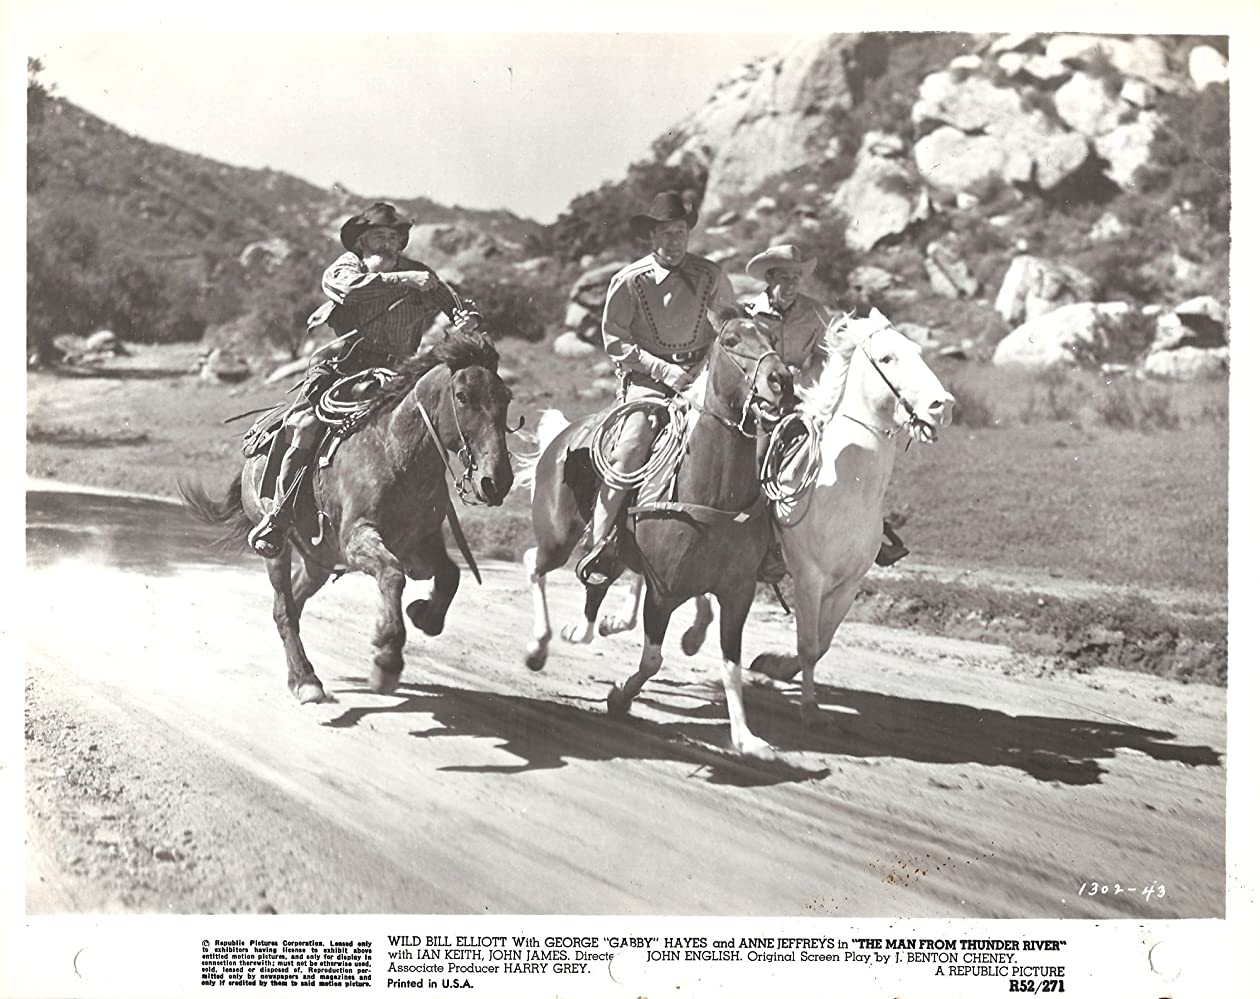 Bill Elliott, George 'Gabby' Hayes, and John James in The Man from Thunder River (1943)